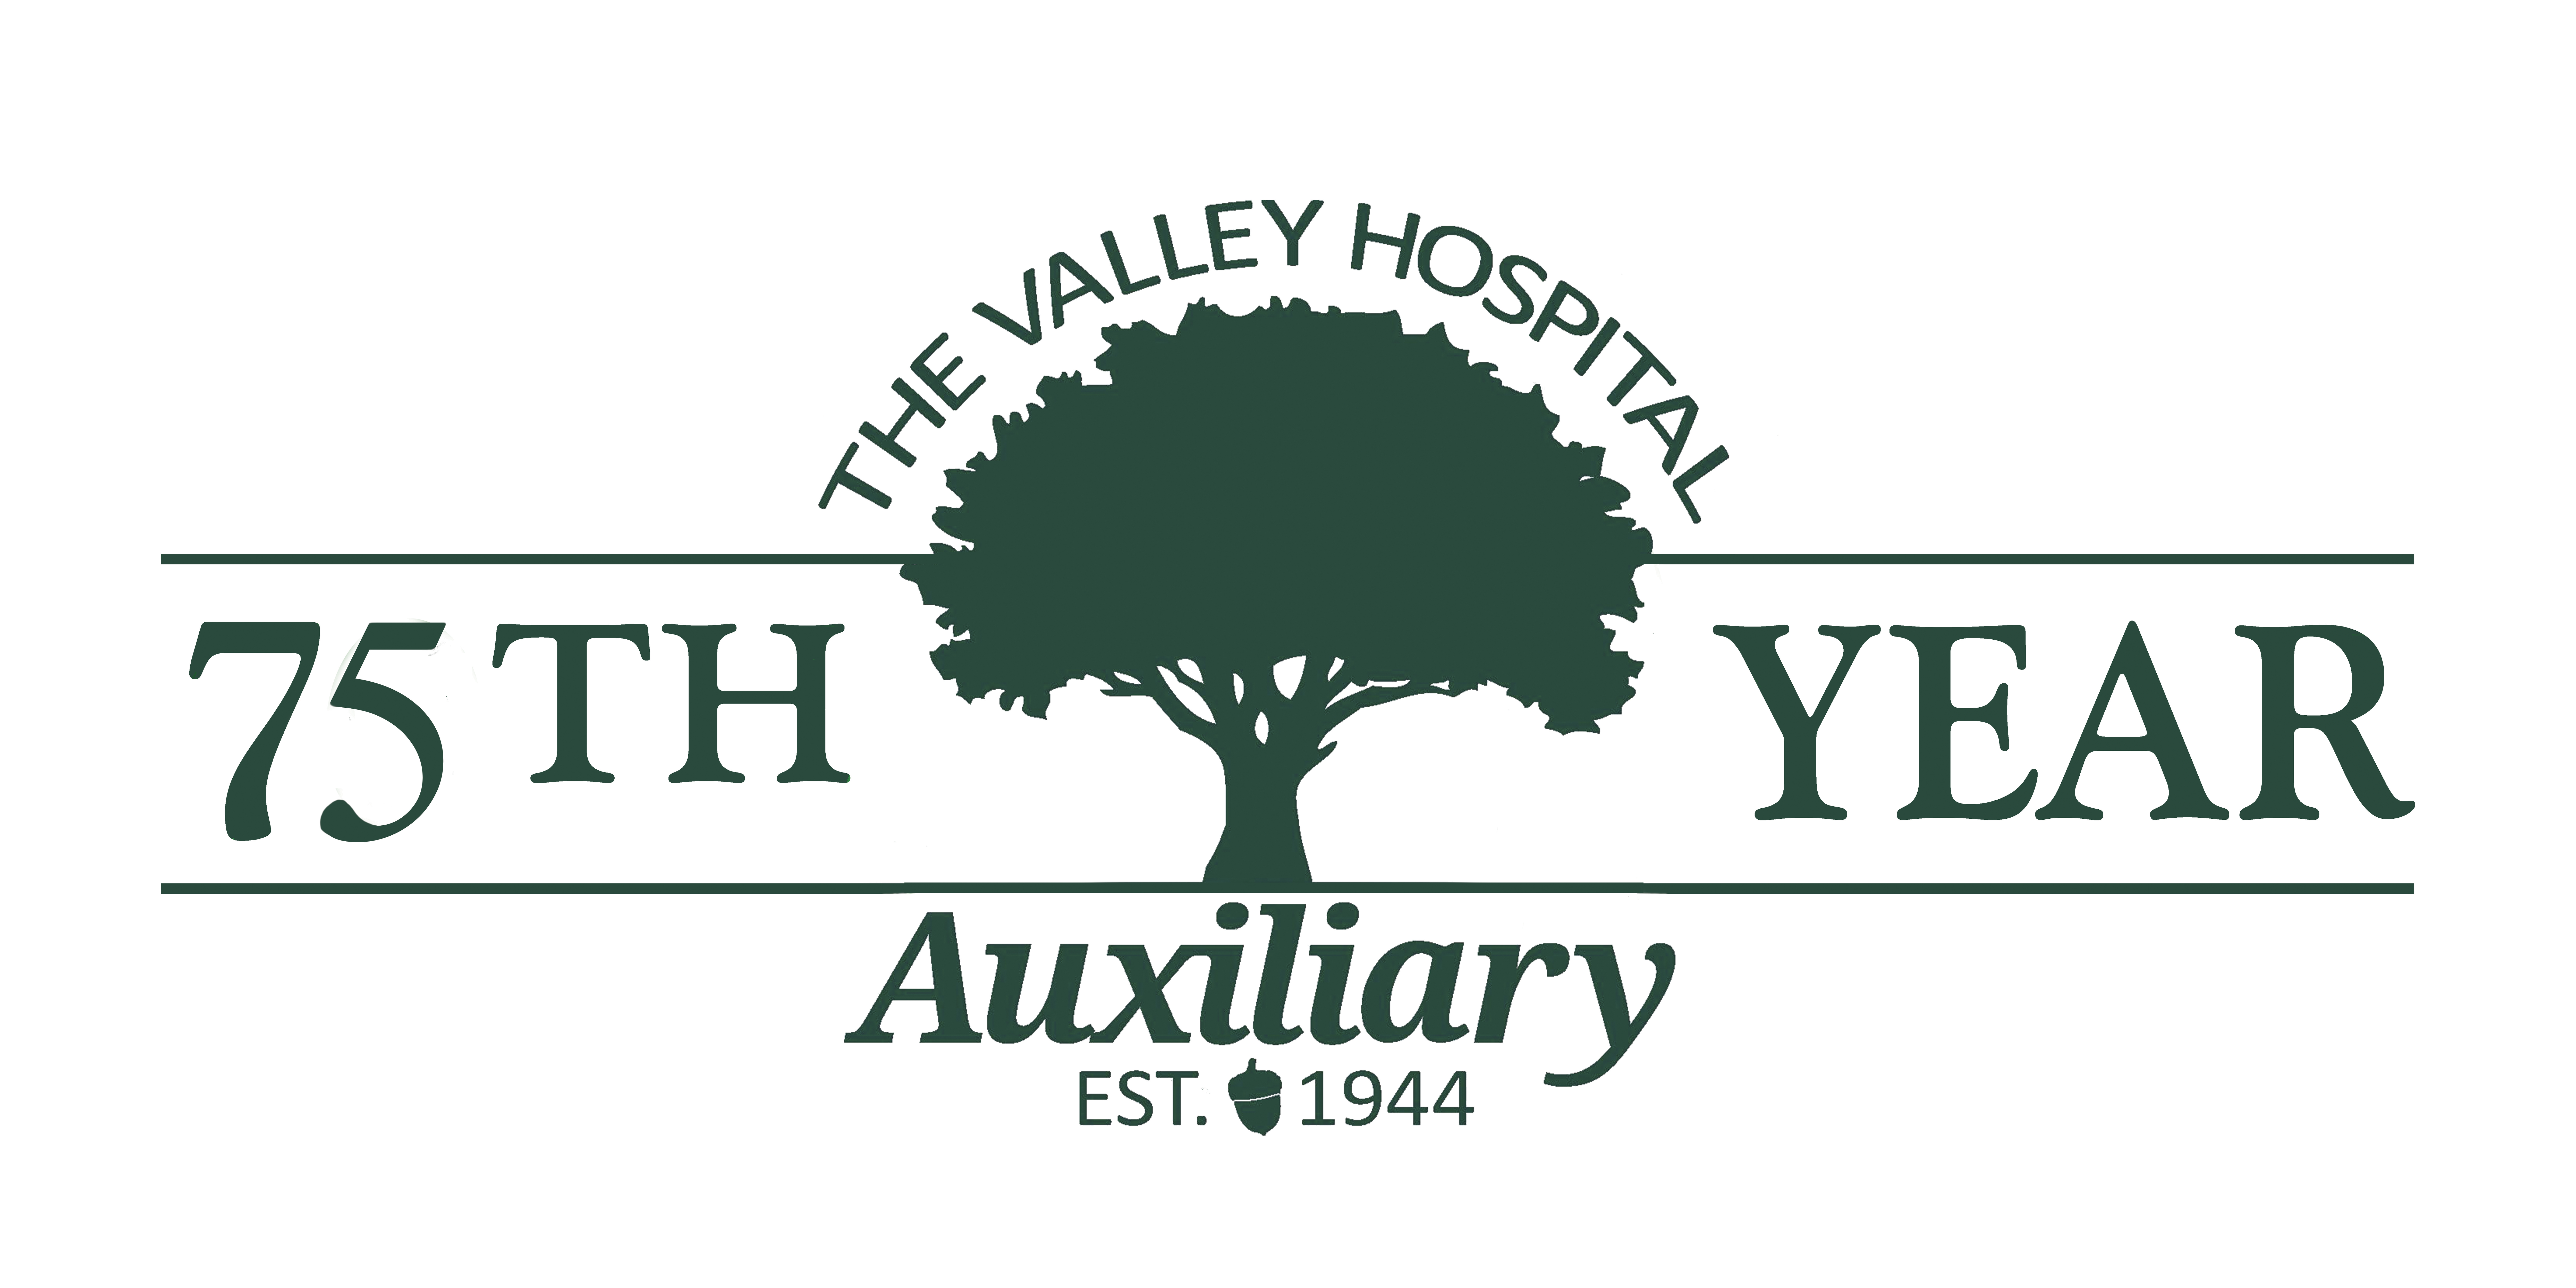 The Valley Hospital Auxiliary